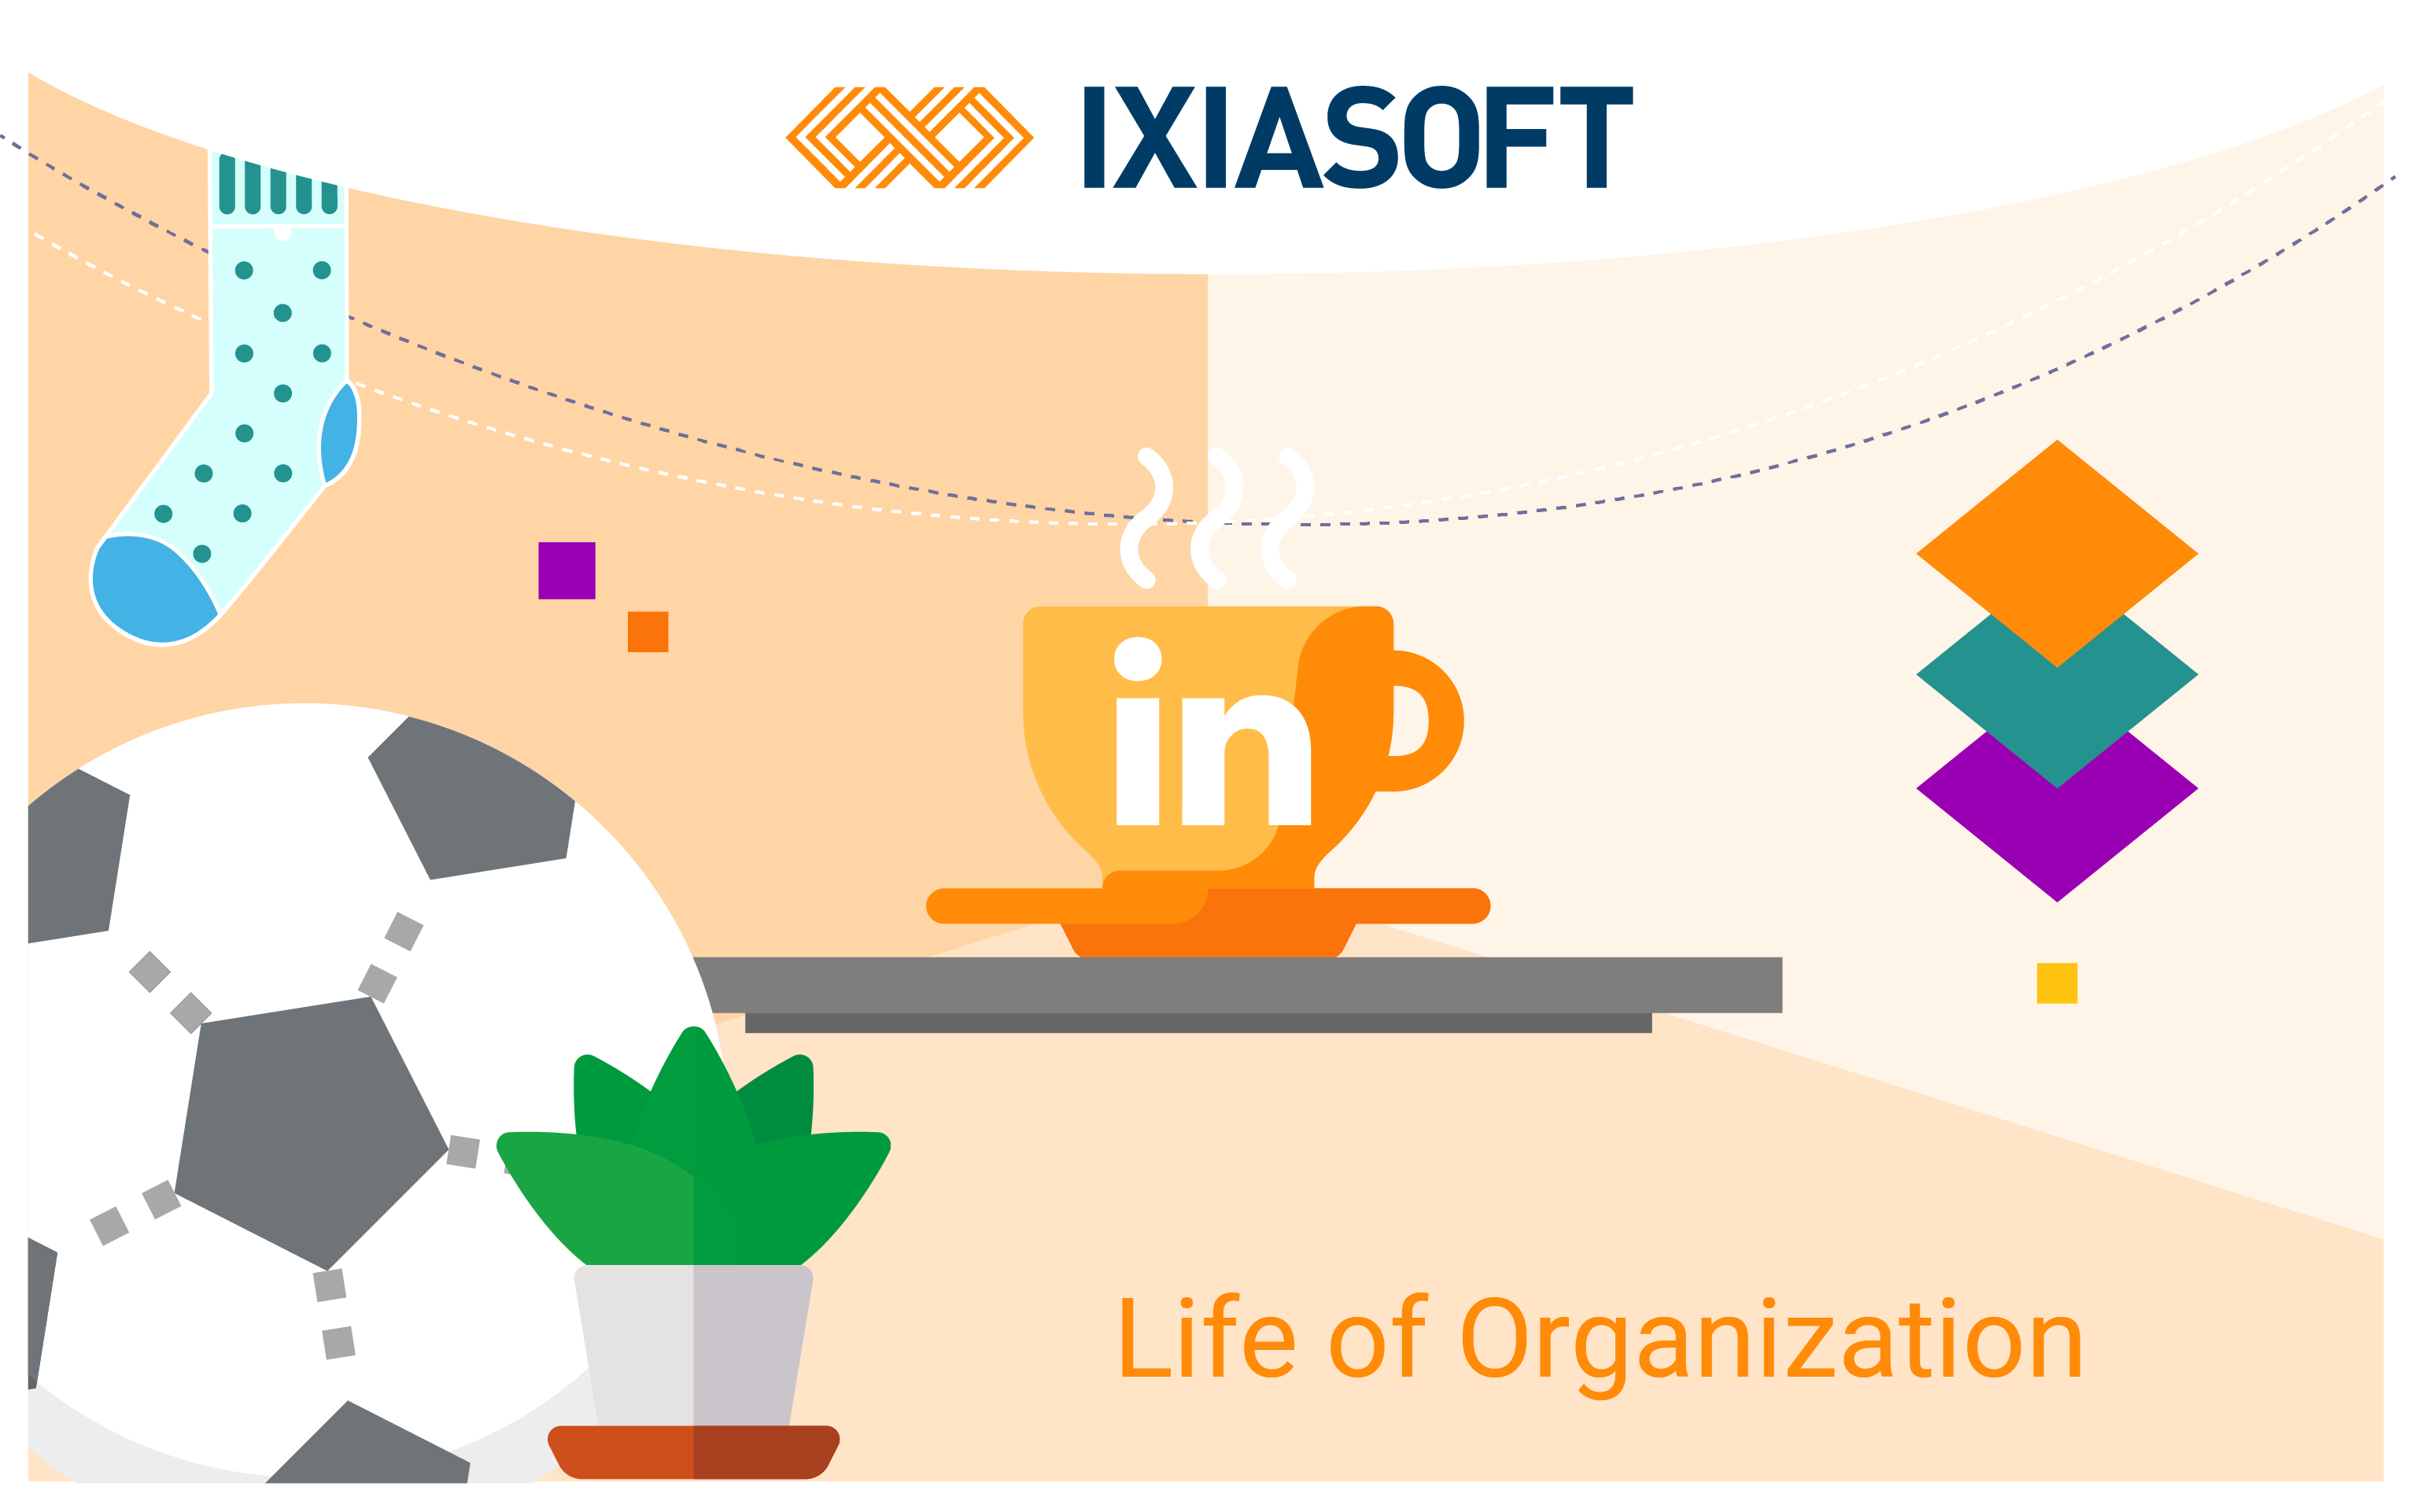 Graphic of life of organization at IXIASOFT.